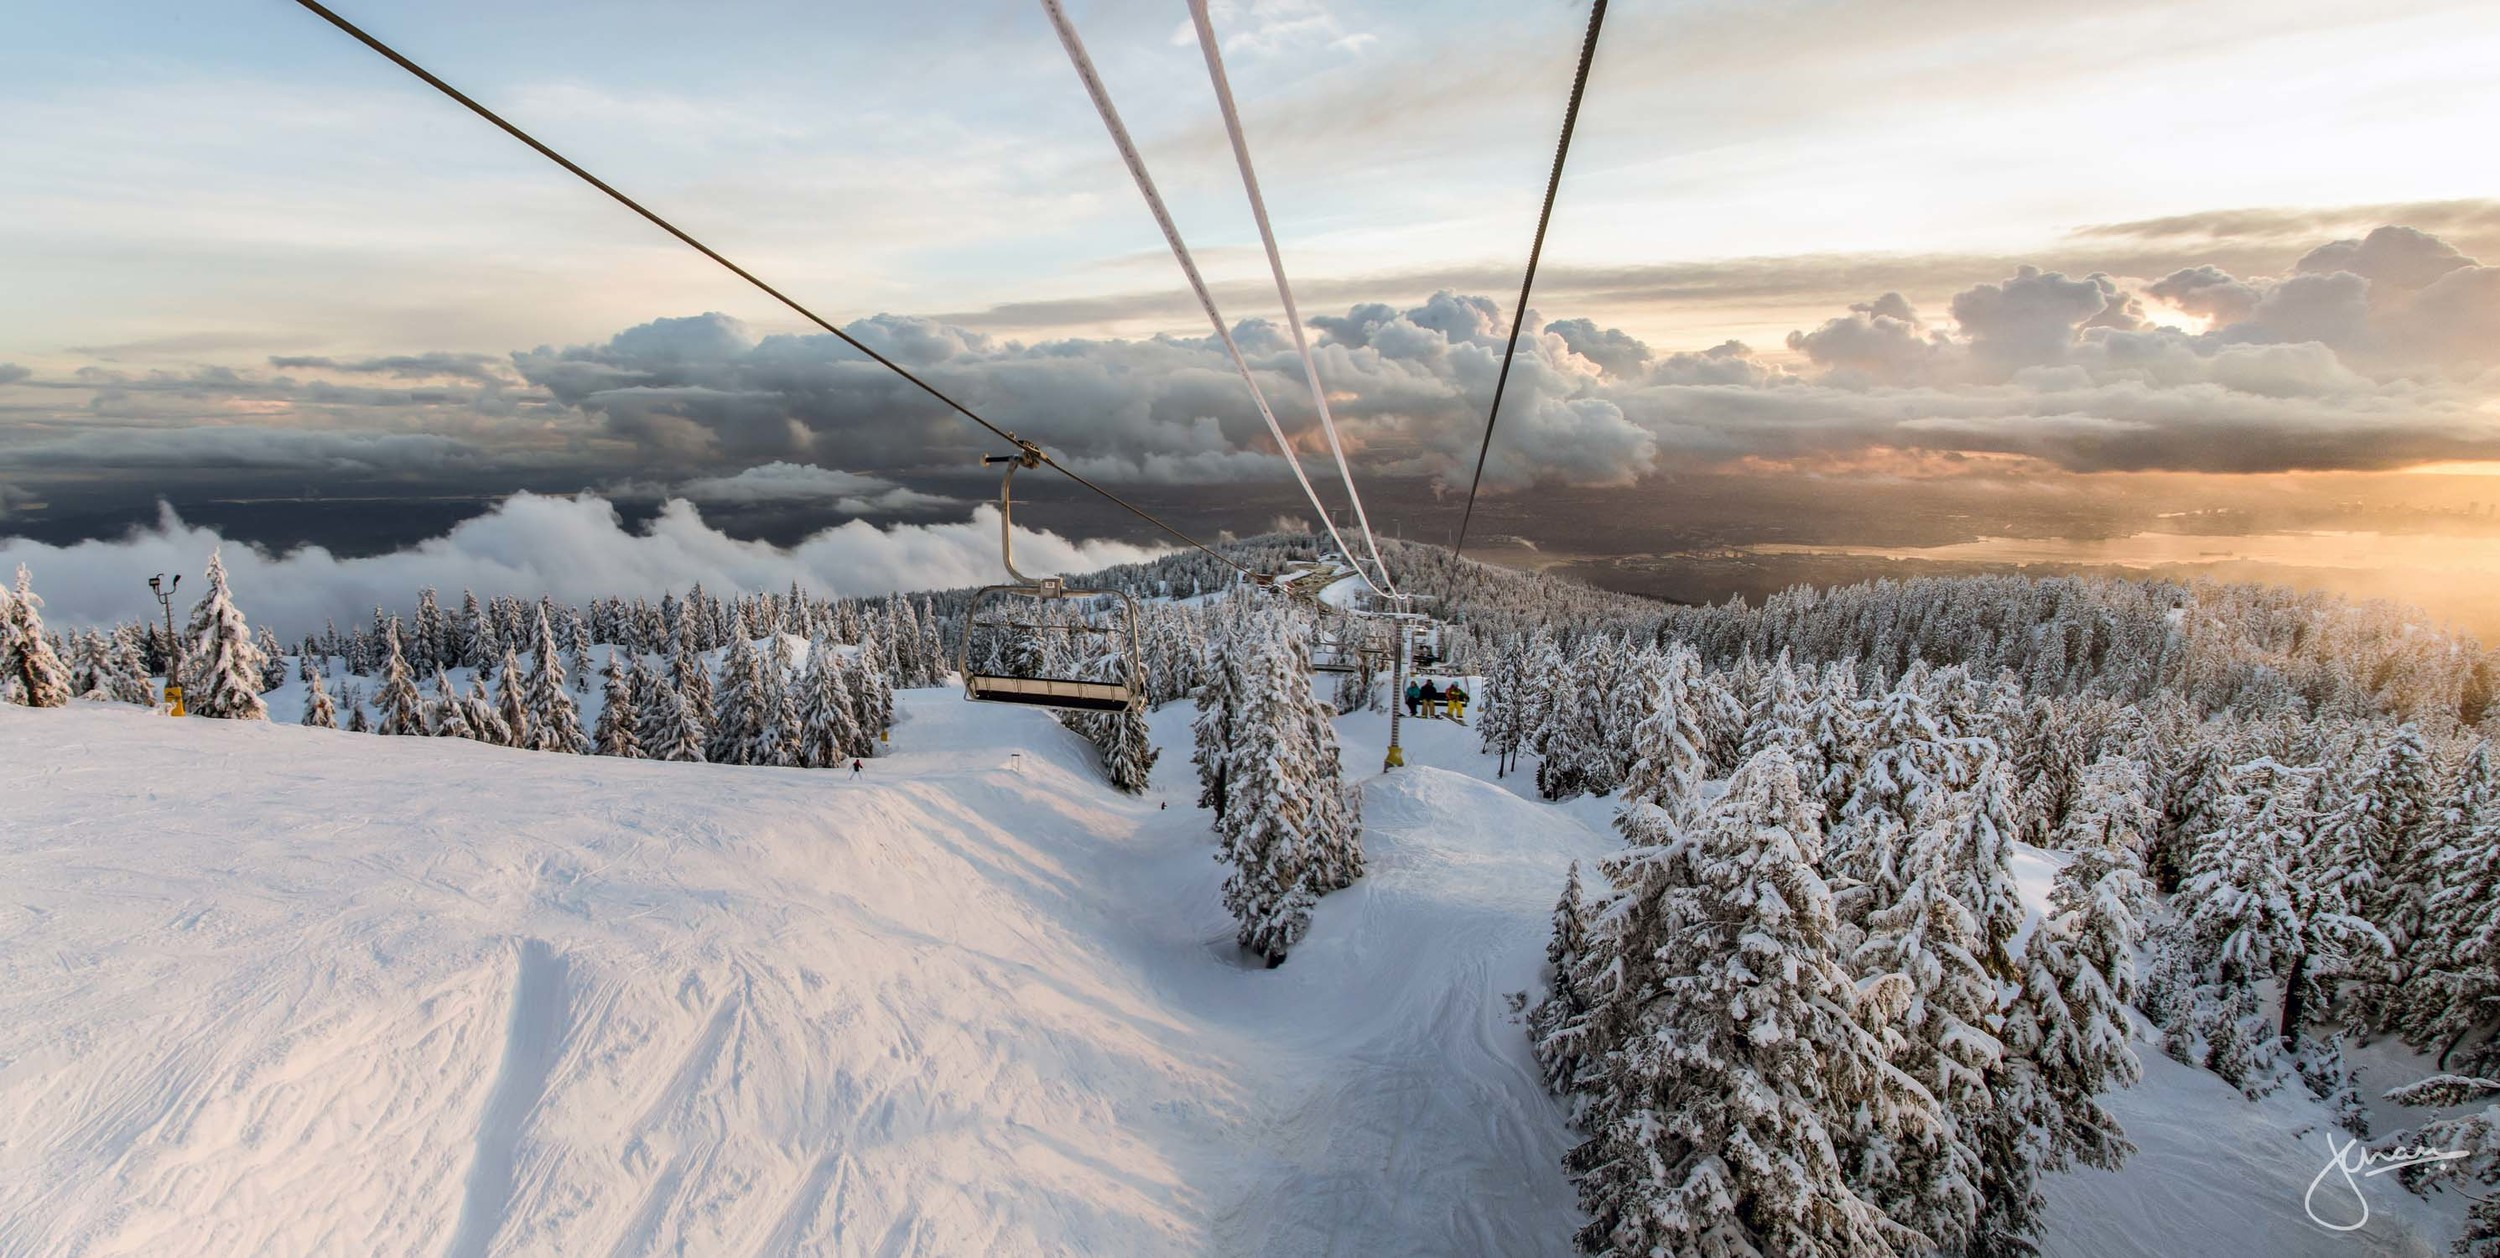 Sunset on the Chairlift